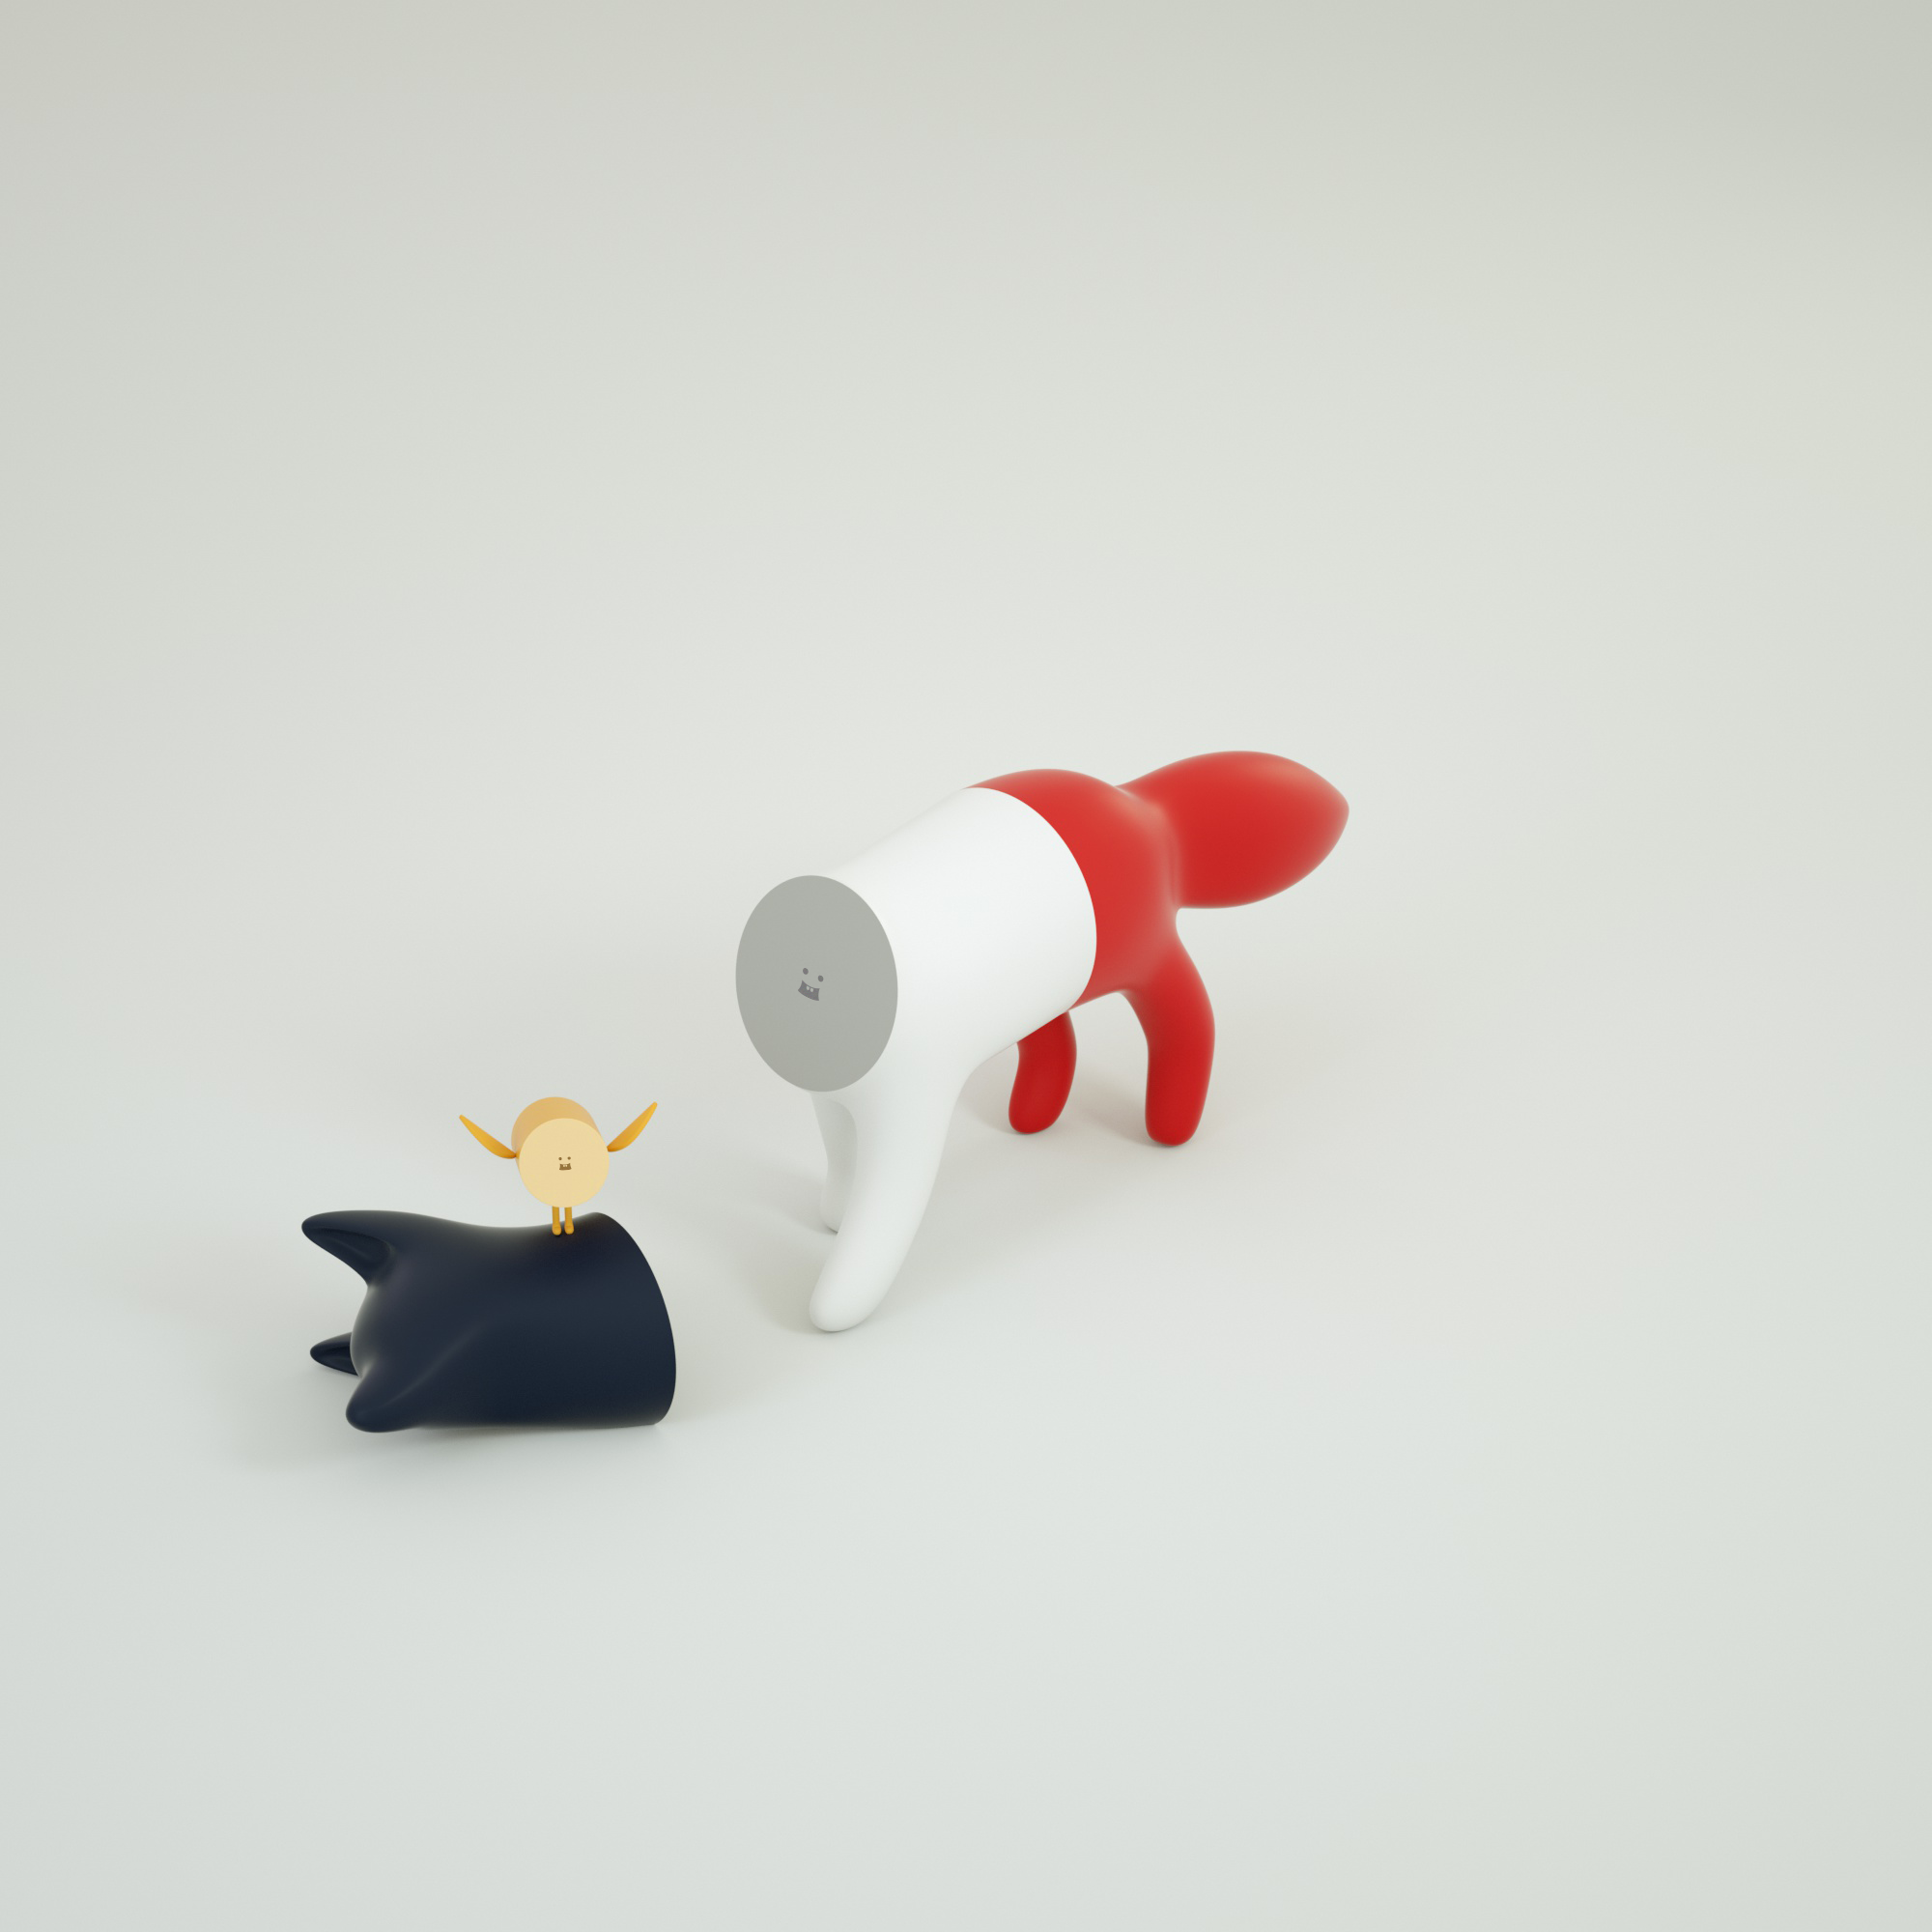 Cute Tricolor Fox Toy Collectible by Superfiction x Maison Kitsune